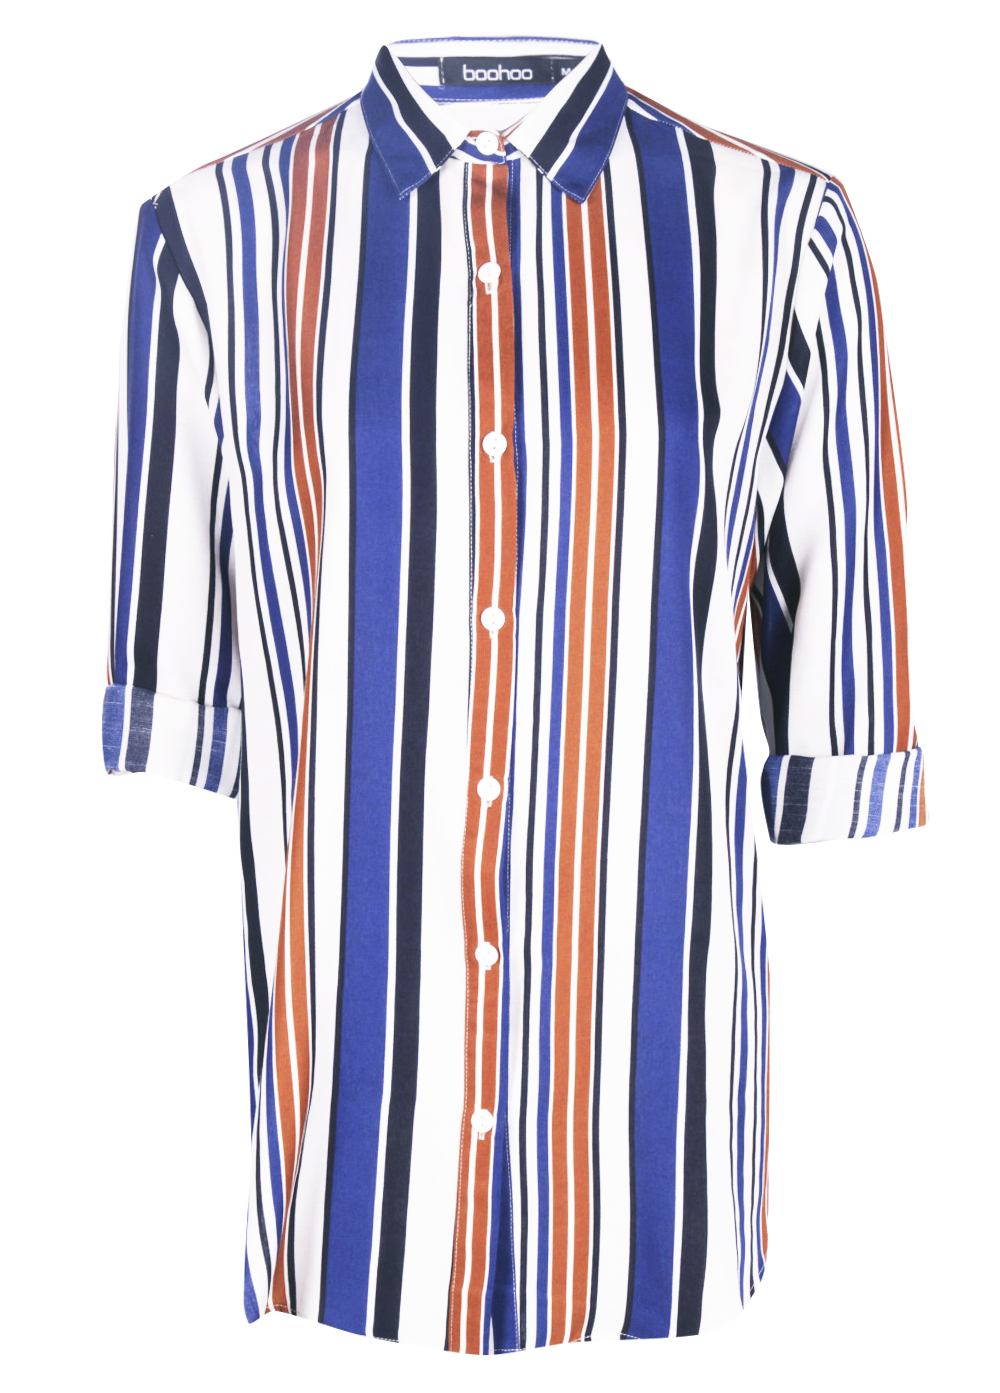 Isobel striped oversized shirt/